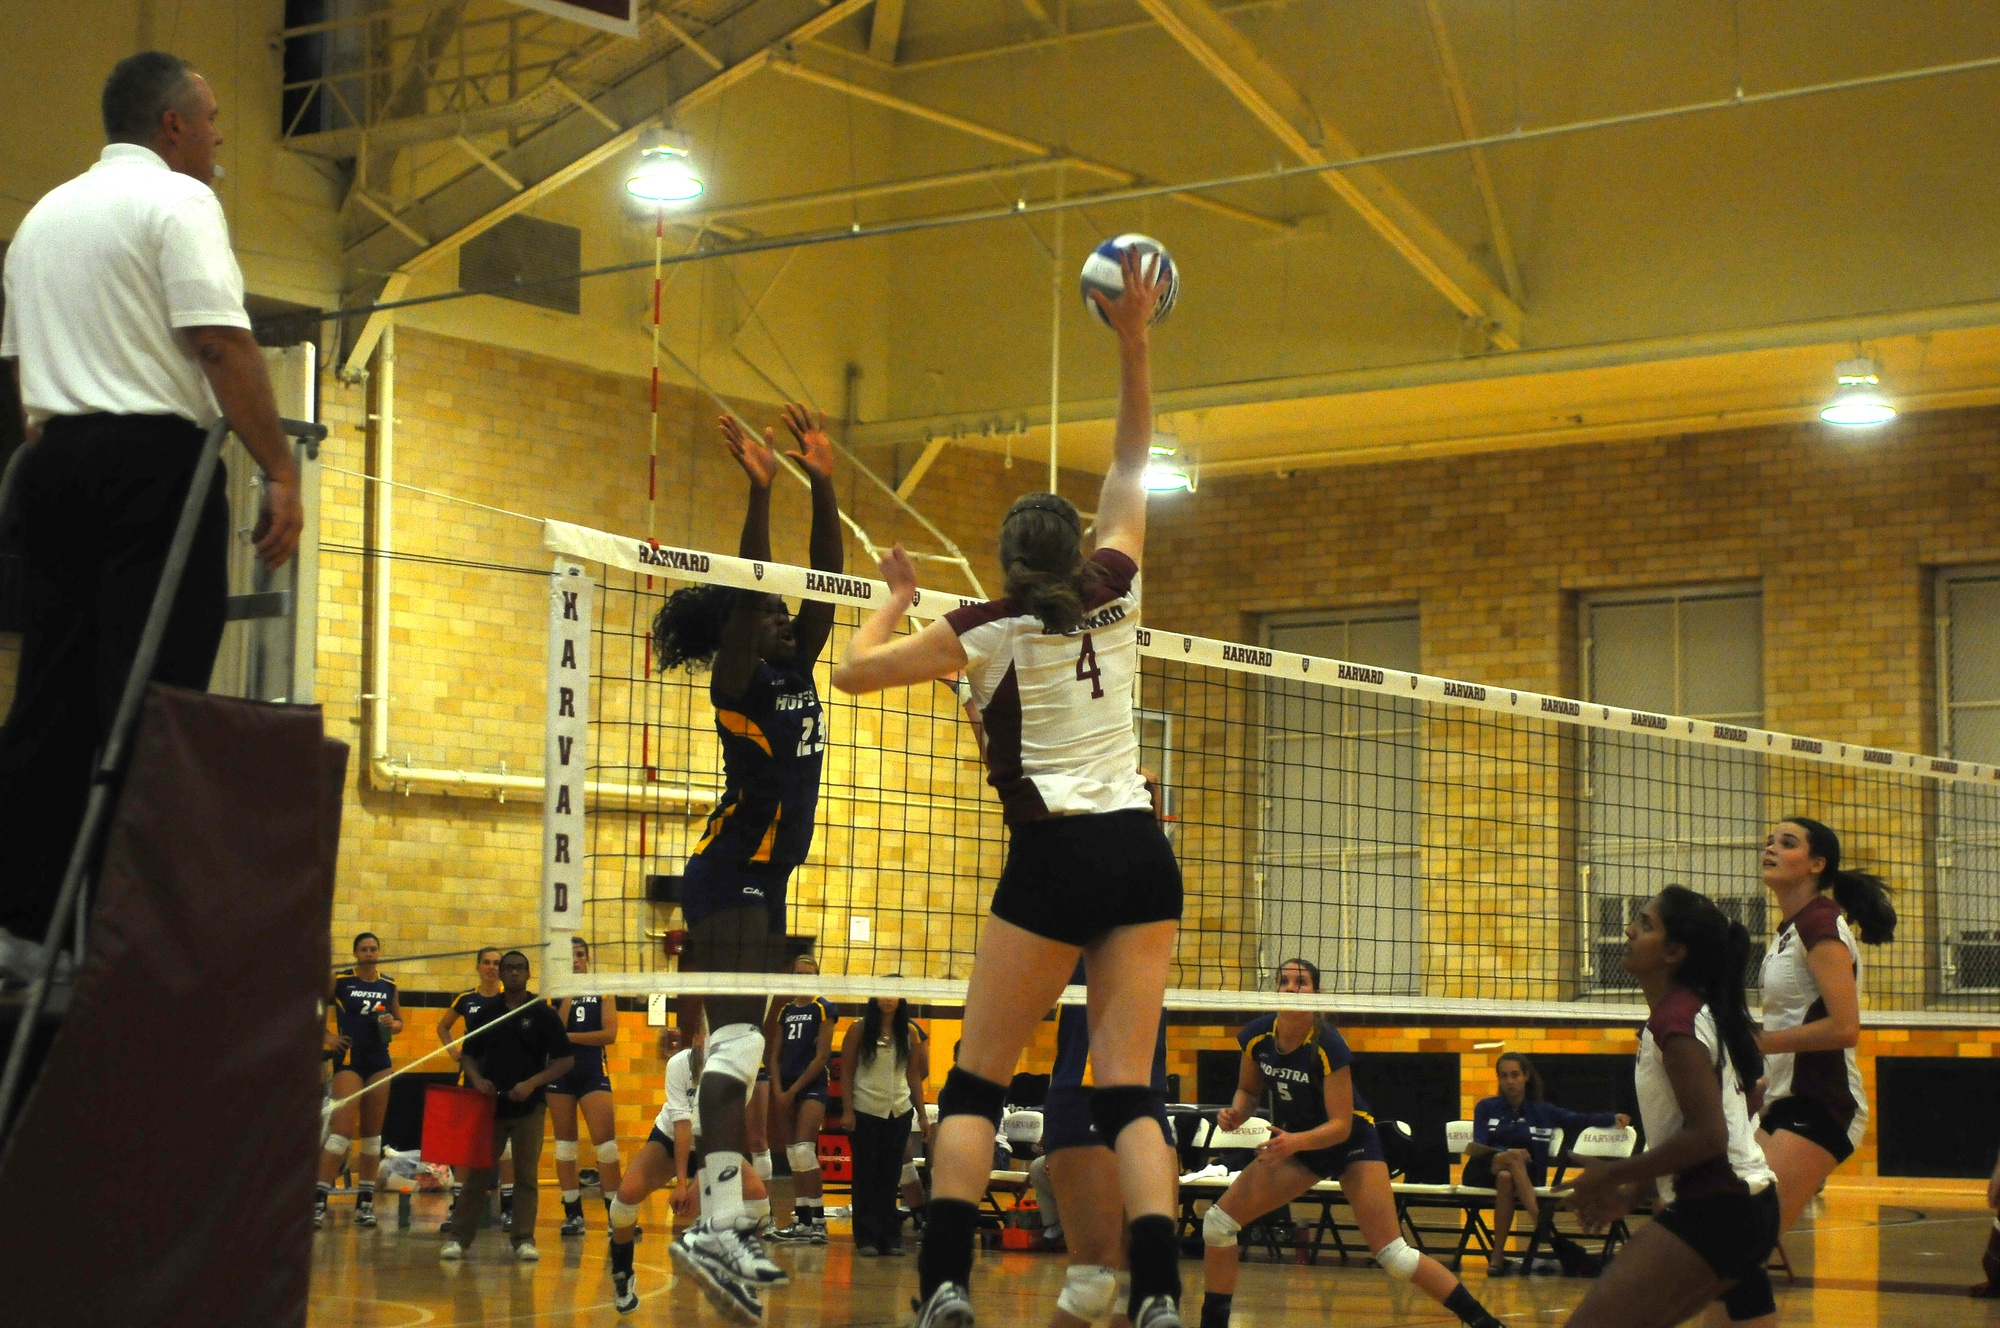 The Harvard women's volleyball team captured two of its three contests at the Benson's Hospitality Invitational, moving to 4-2 on the season.